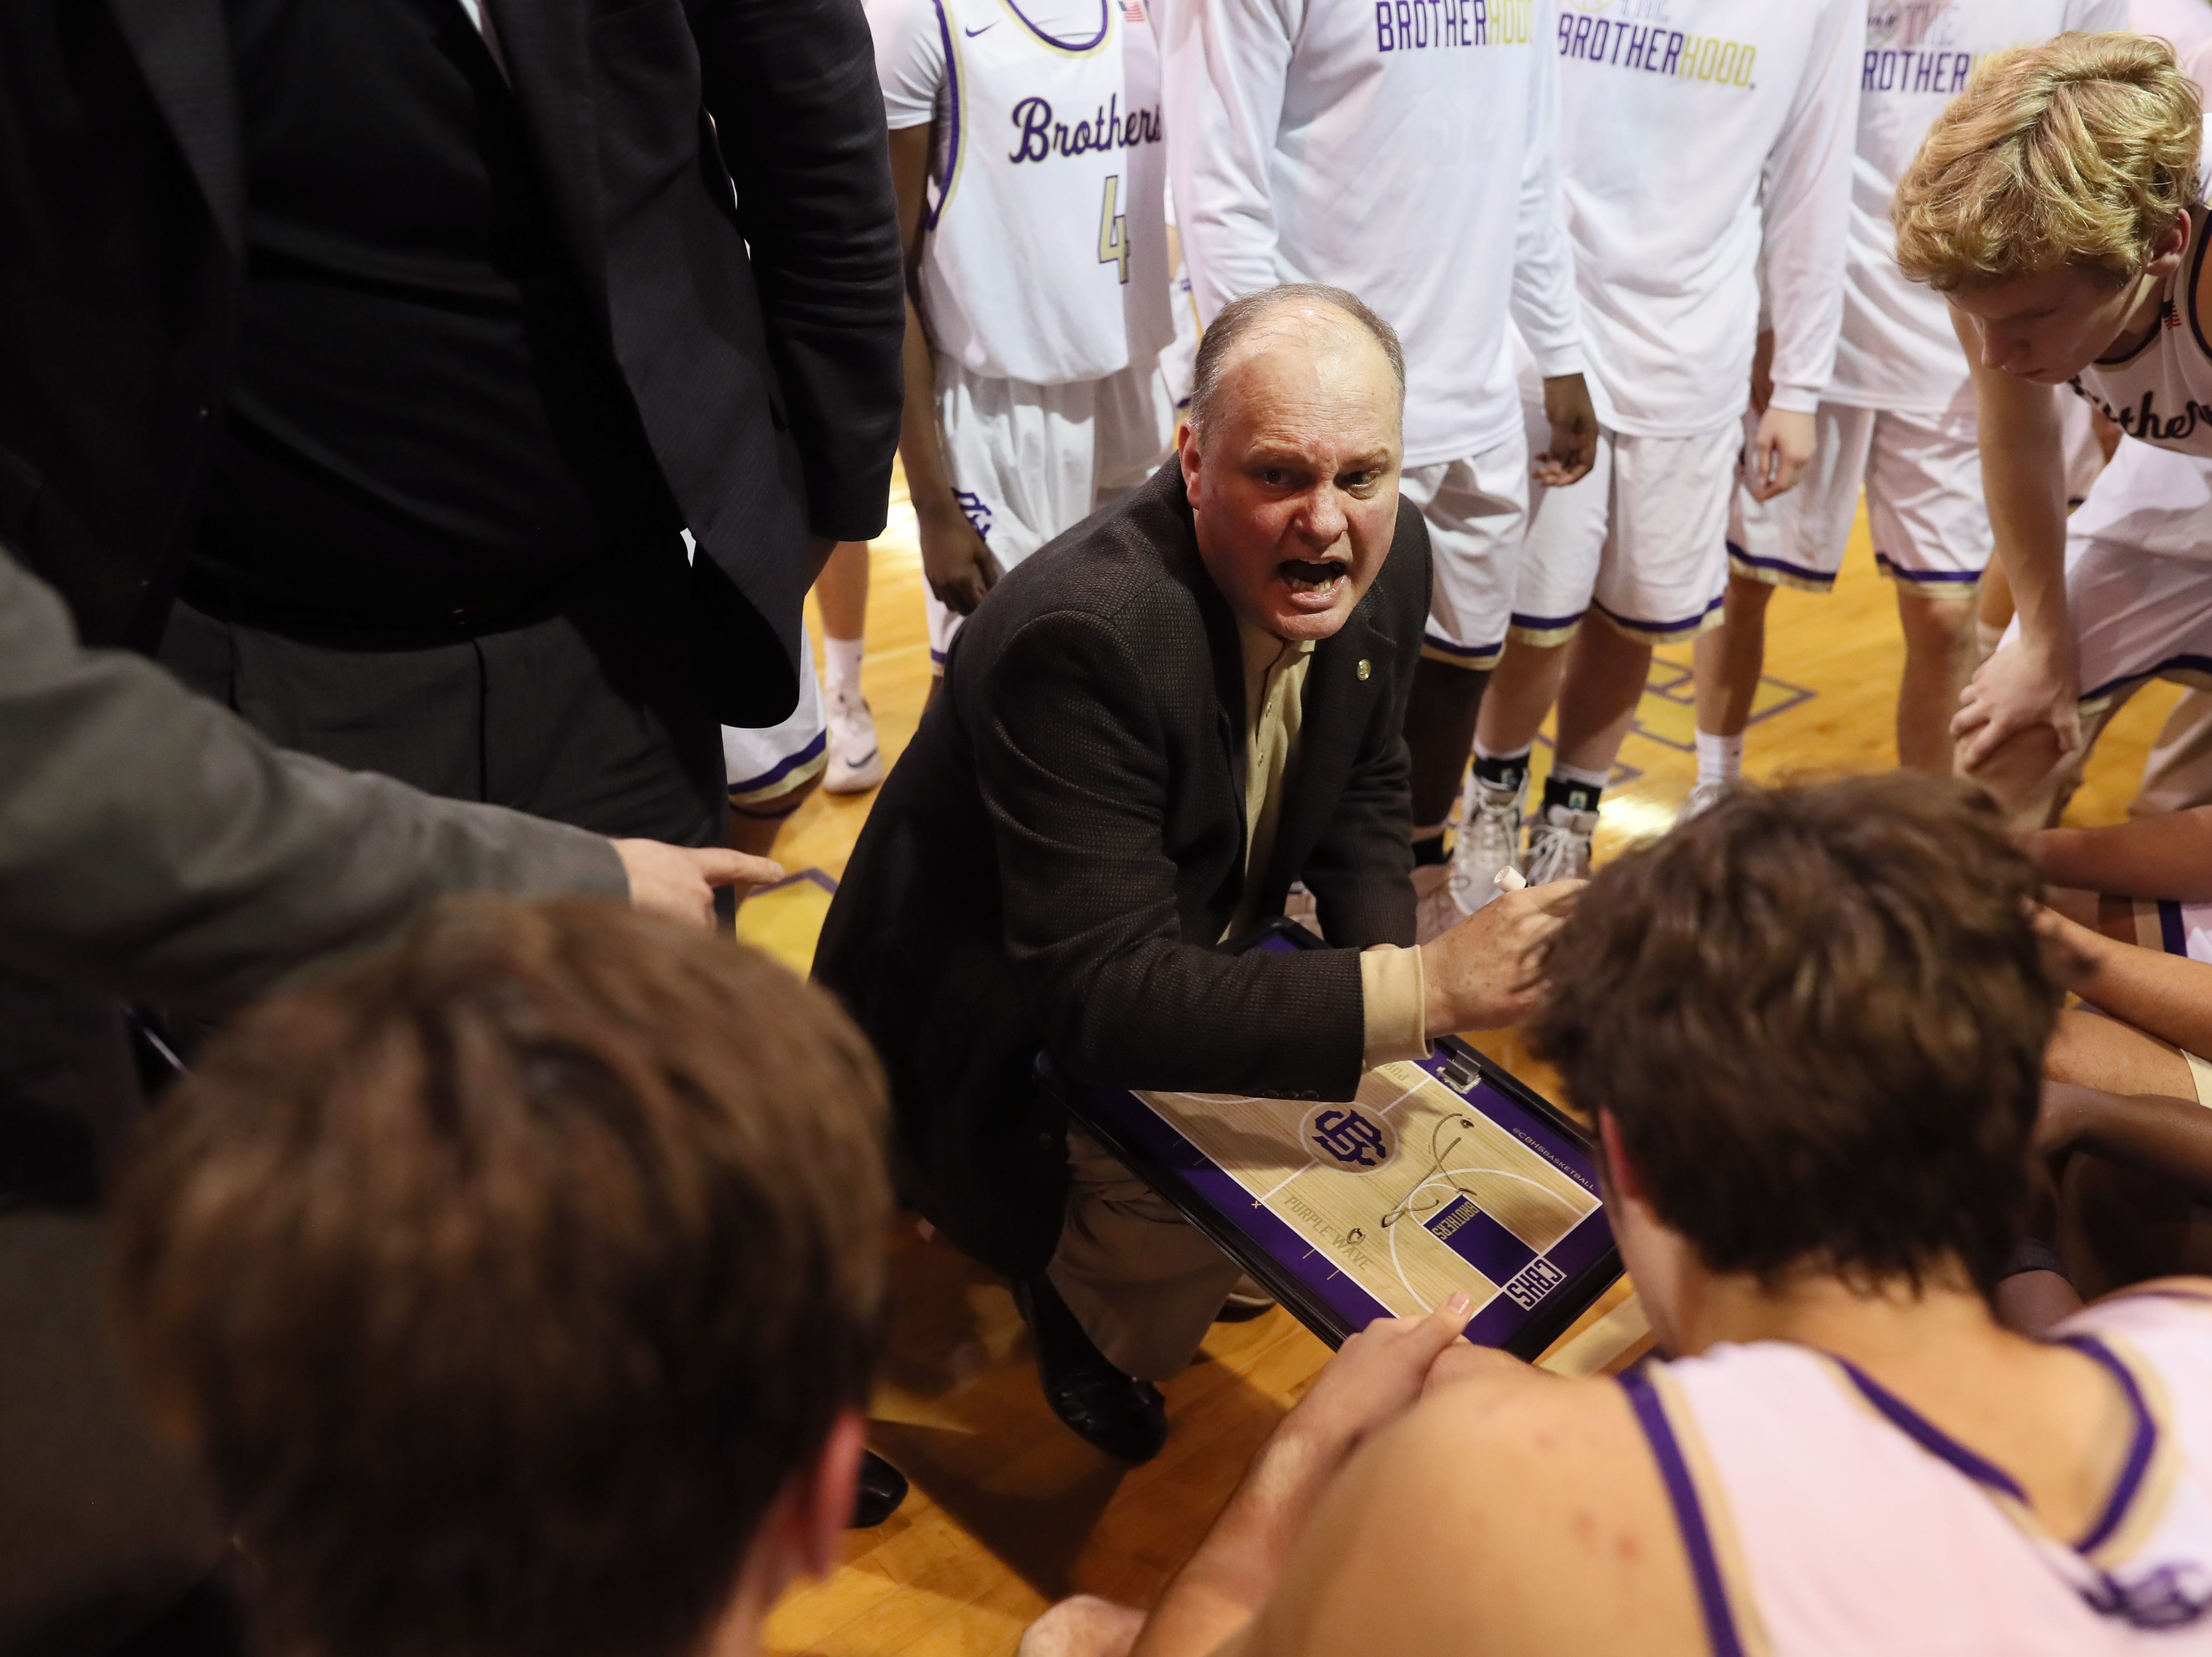 Christian Brothers Head Coach William Luckett talks to his team during a timeout in their game against Briarcrest at Christian Brothers High School on Friday, Jan. 11, 2019.